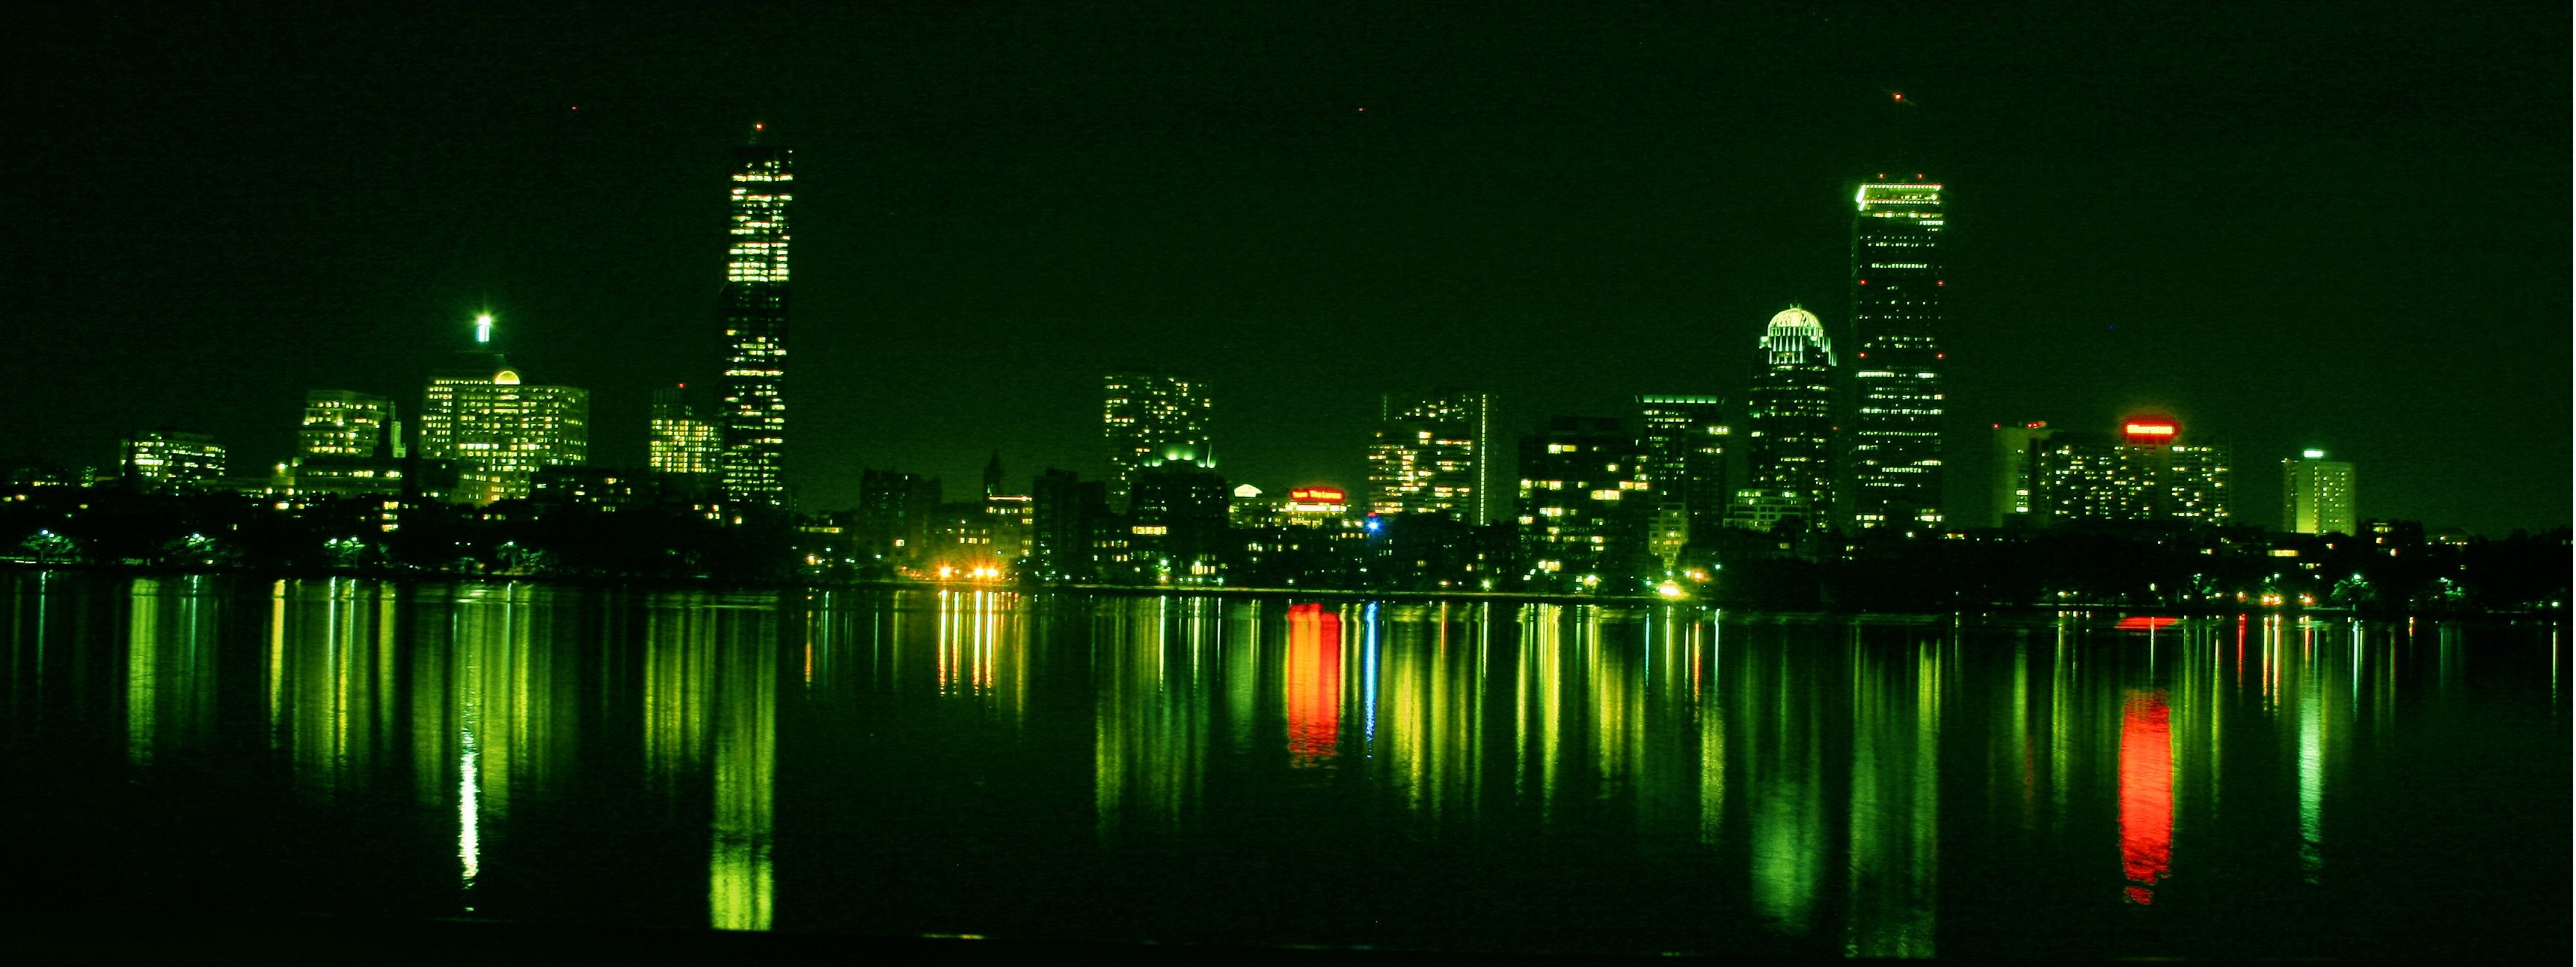 Boston @ Nite